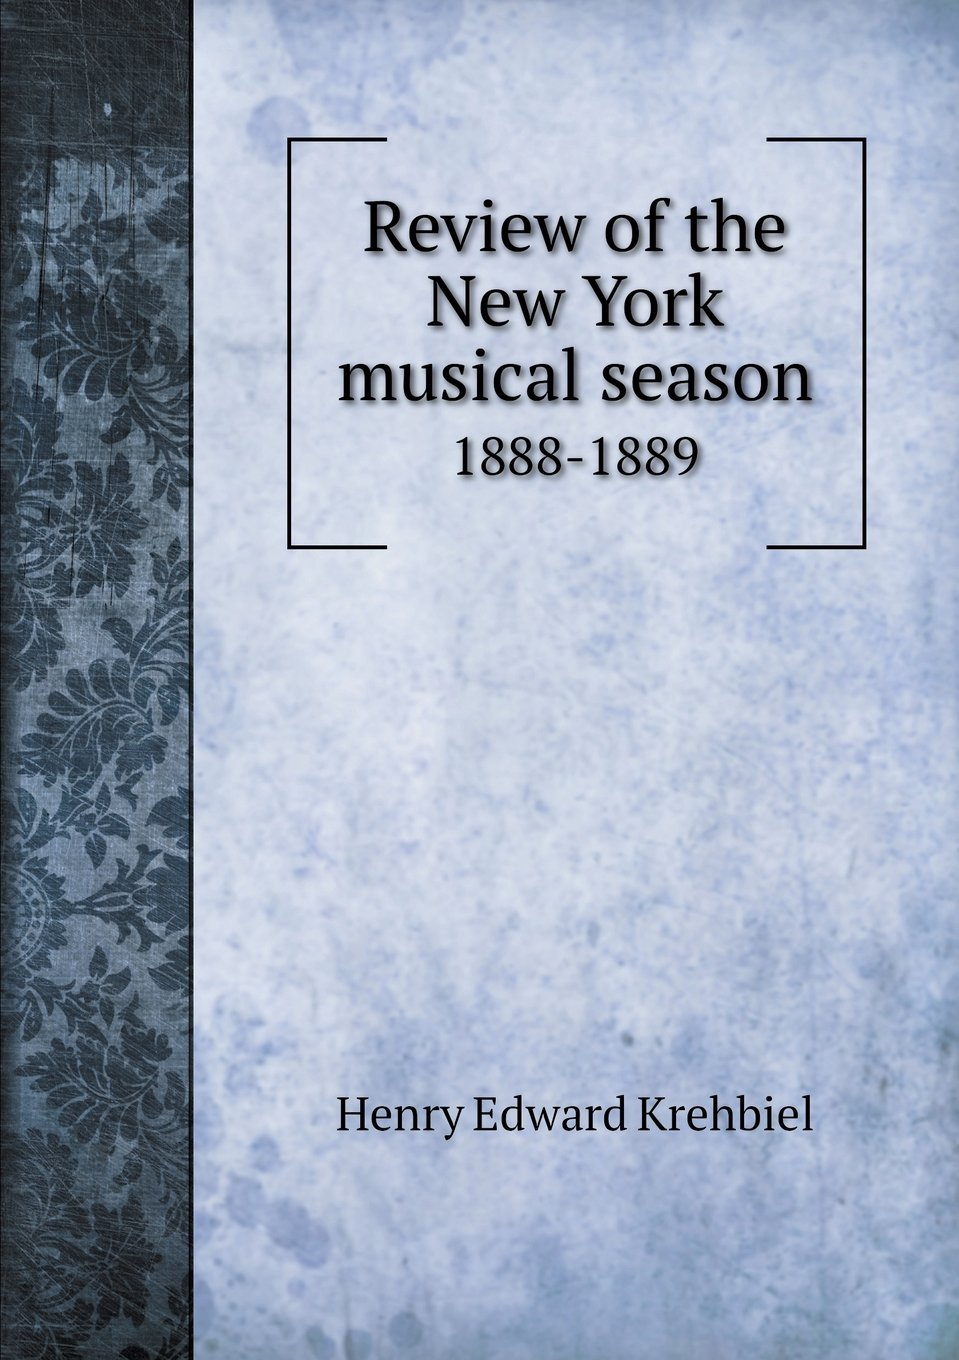 Review of the New York musical season 1888-1889 PDF